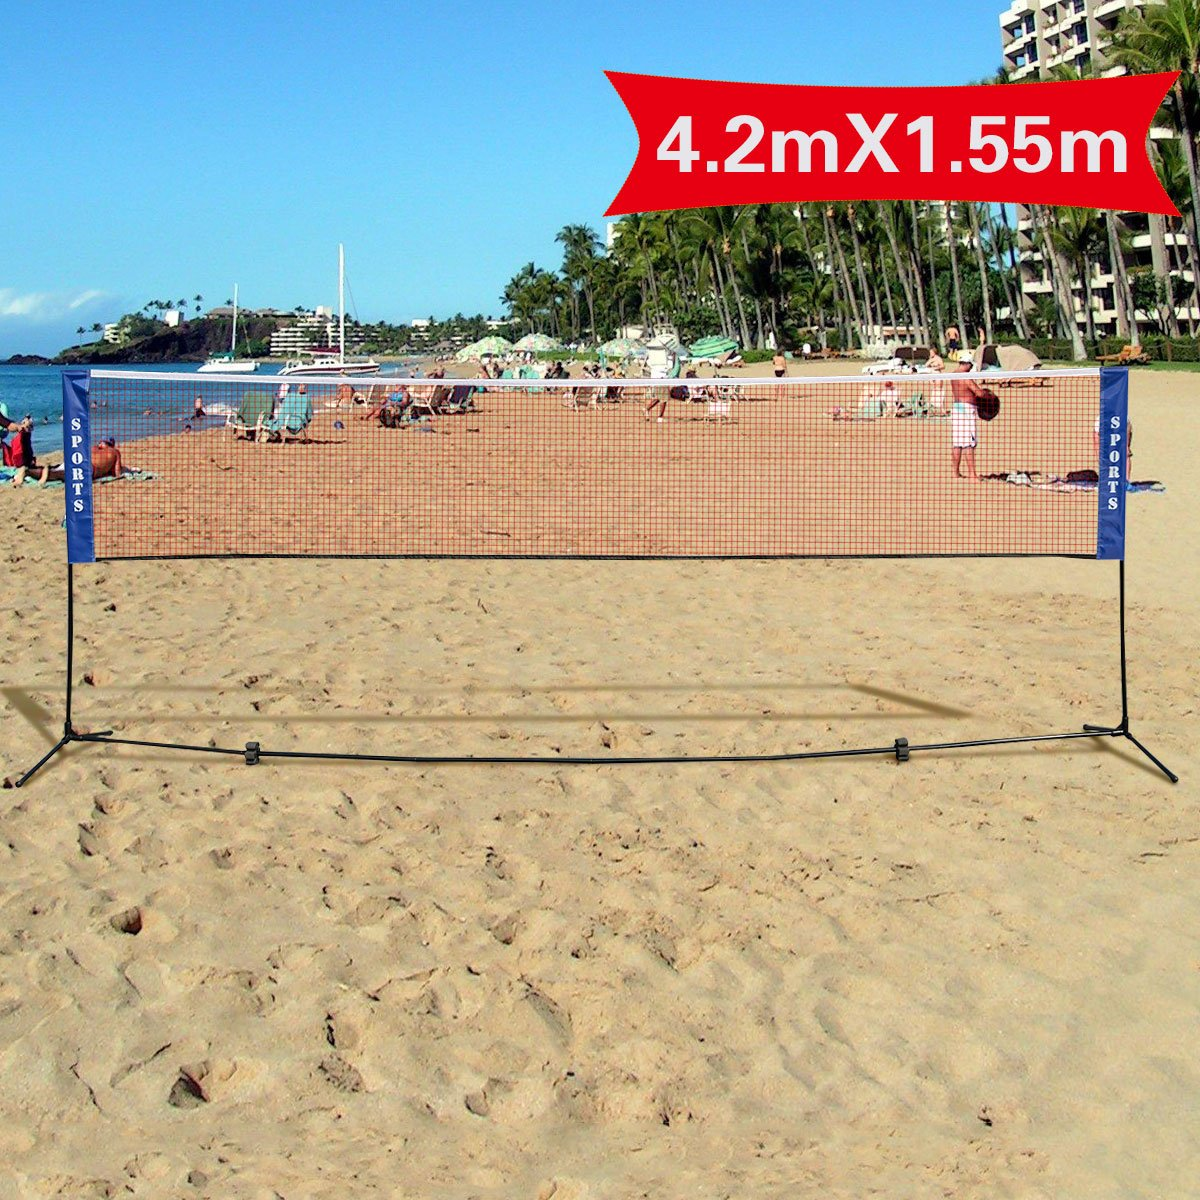 Costway 3m or 4m Adjustable Foldable Badminton Tennis Volleyball Net W/ Free Stand International Standard